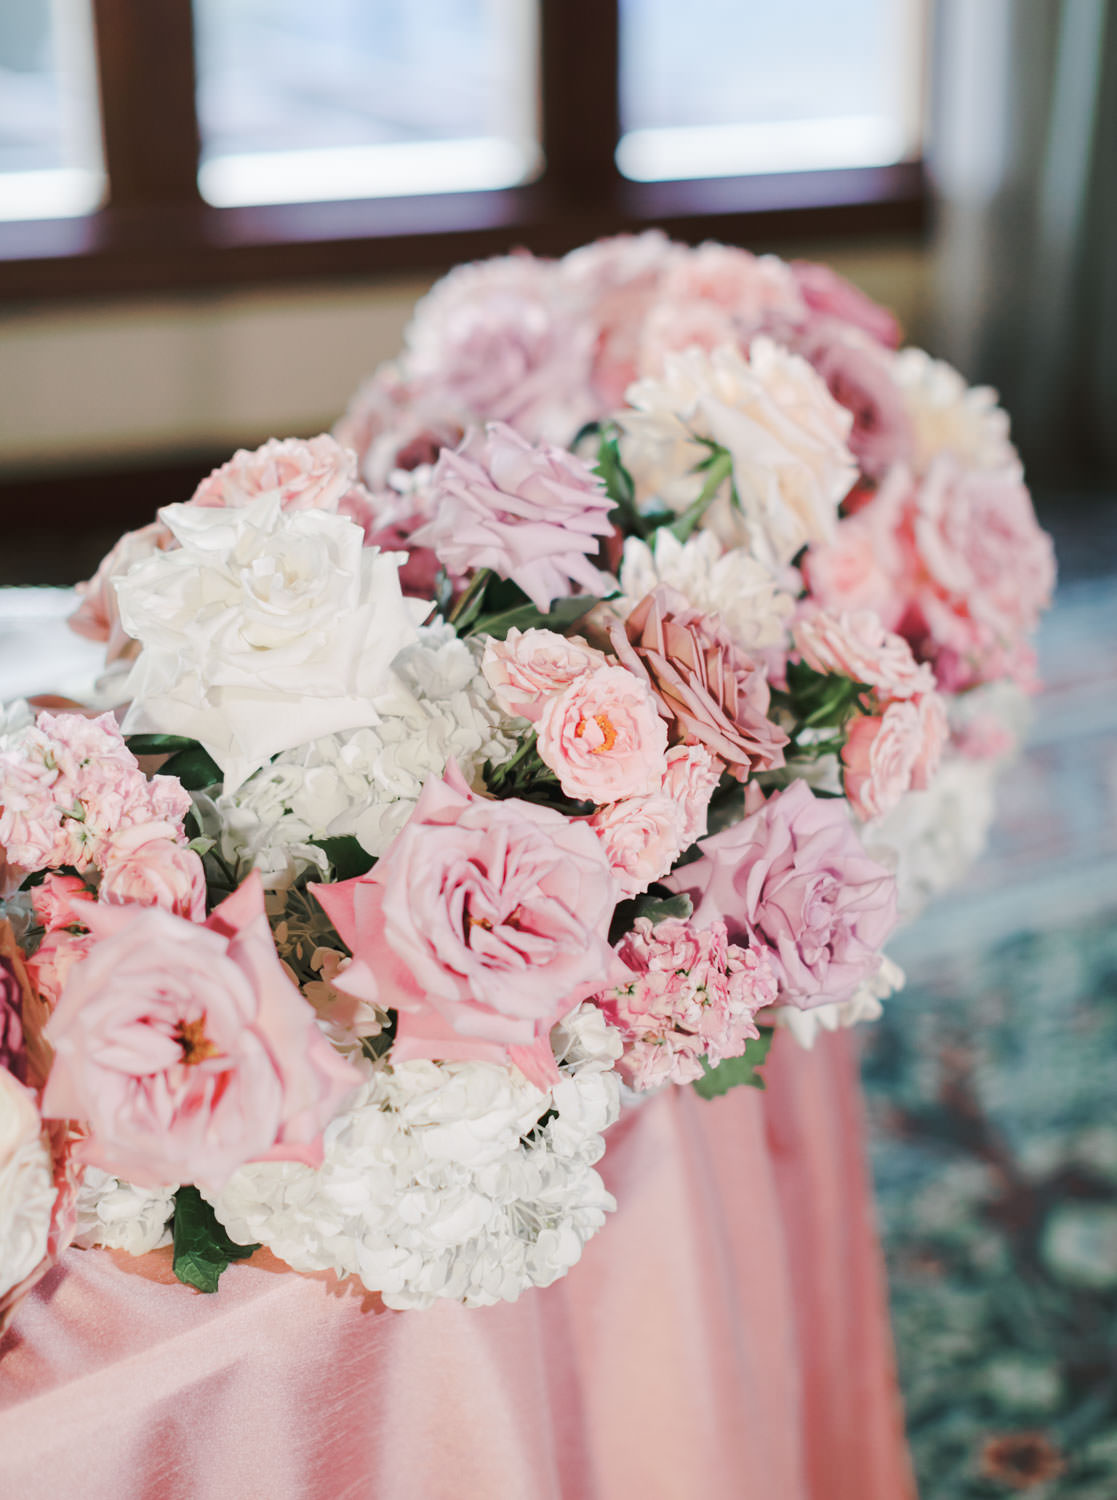 Ballroom wedding centerpieces with pink, lavender, and white flowers, The Lodge at Torrey Pines wedding, photography by Cavin Elizabeth Photography